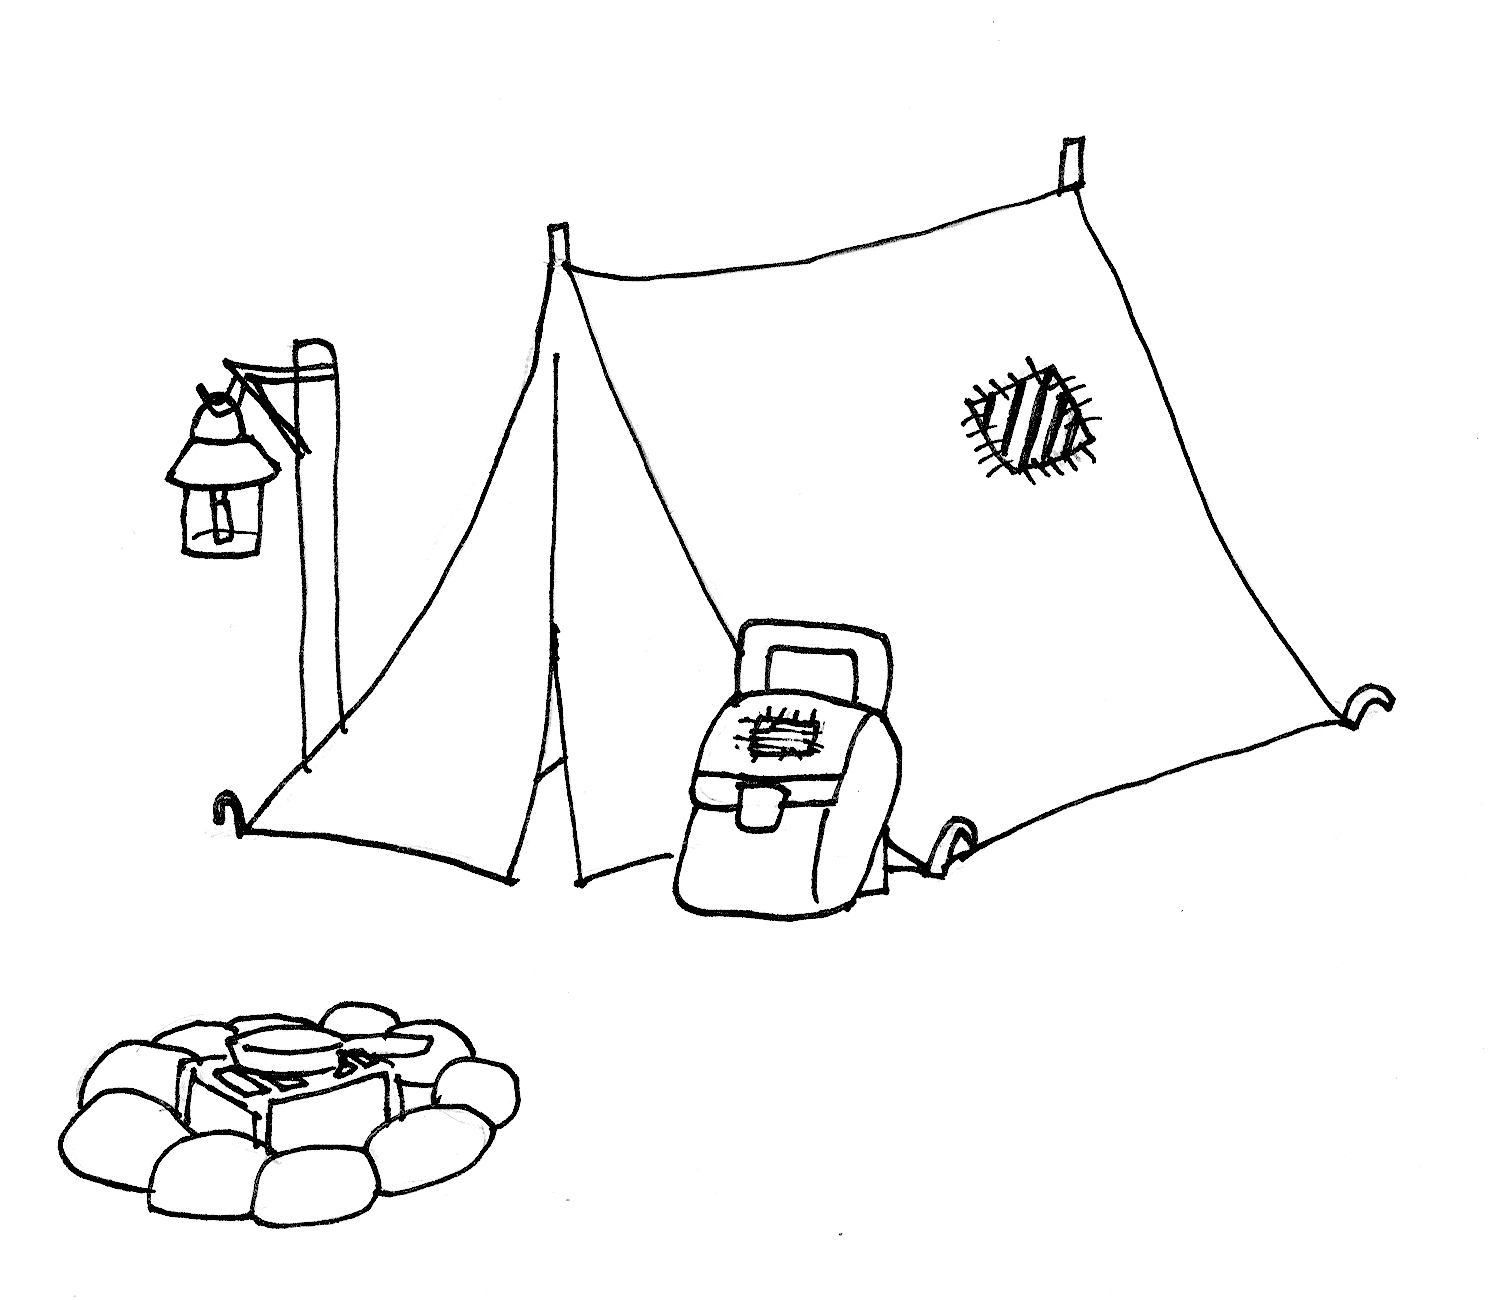 Camping Tent Coloring Page At Getdrawings